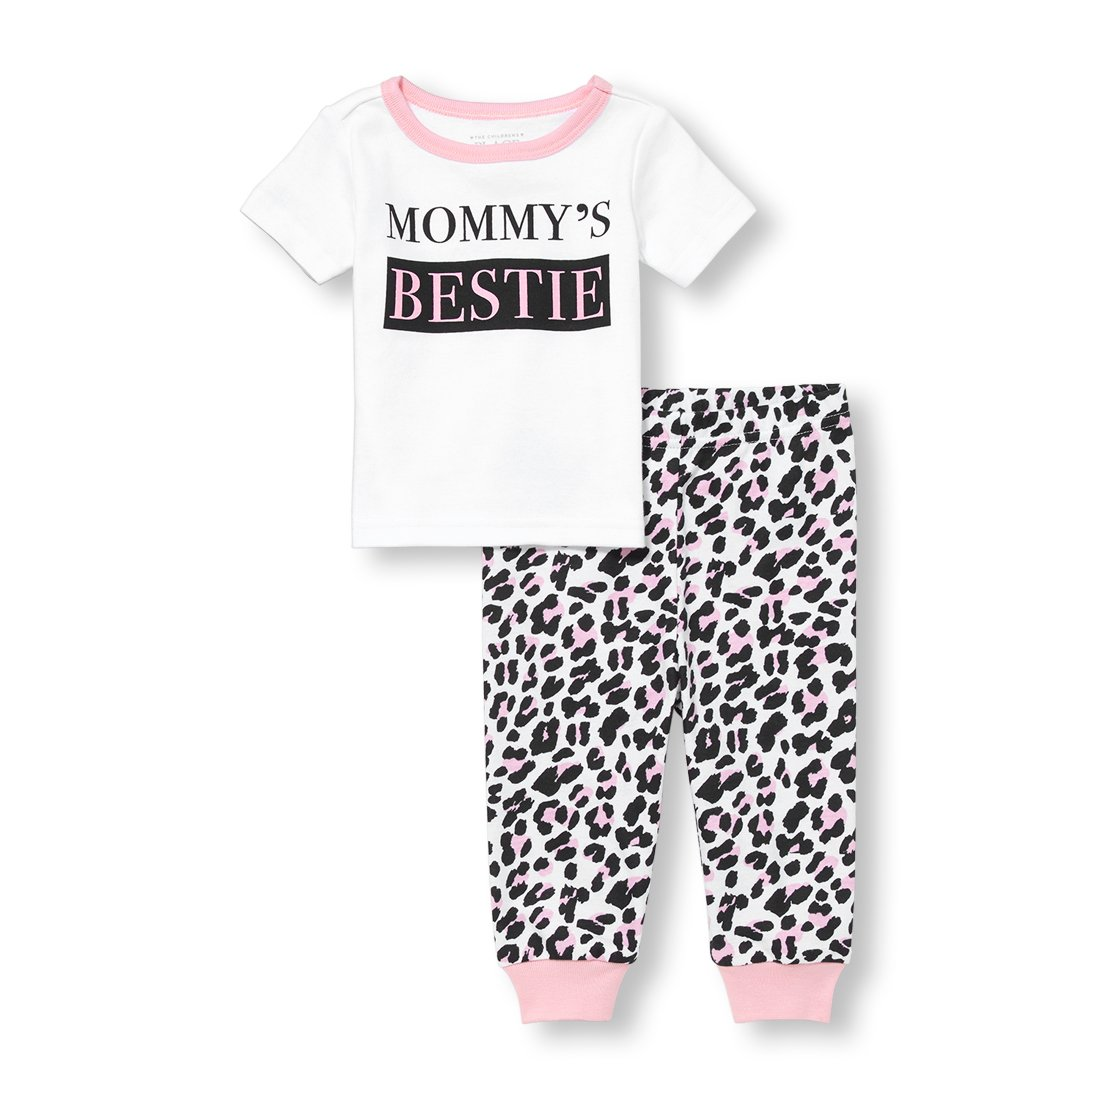 The Children's Place Baby Girls 2 Piece Short Sleeve Pajama Set The Children' s Place